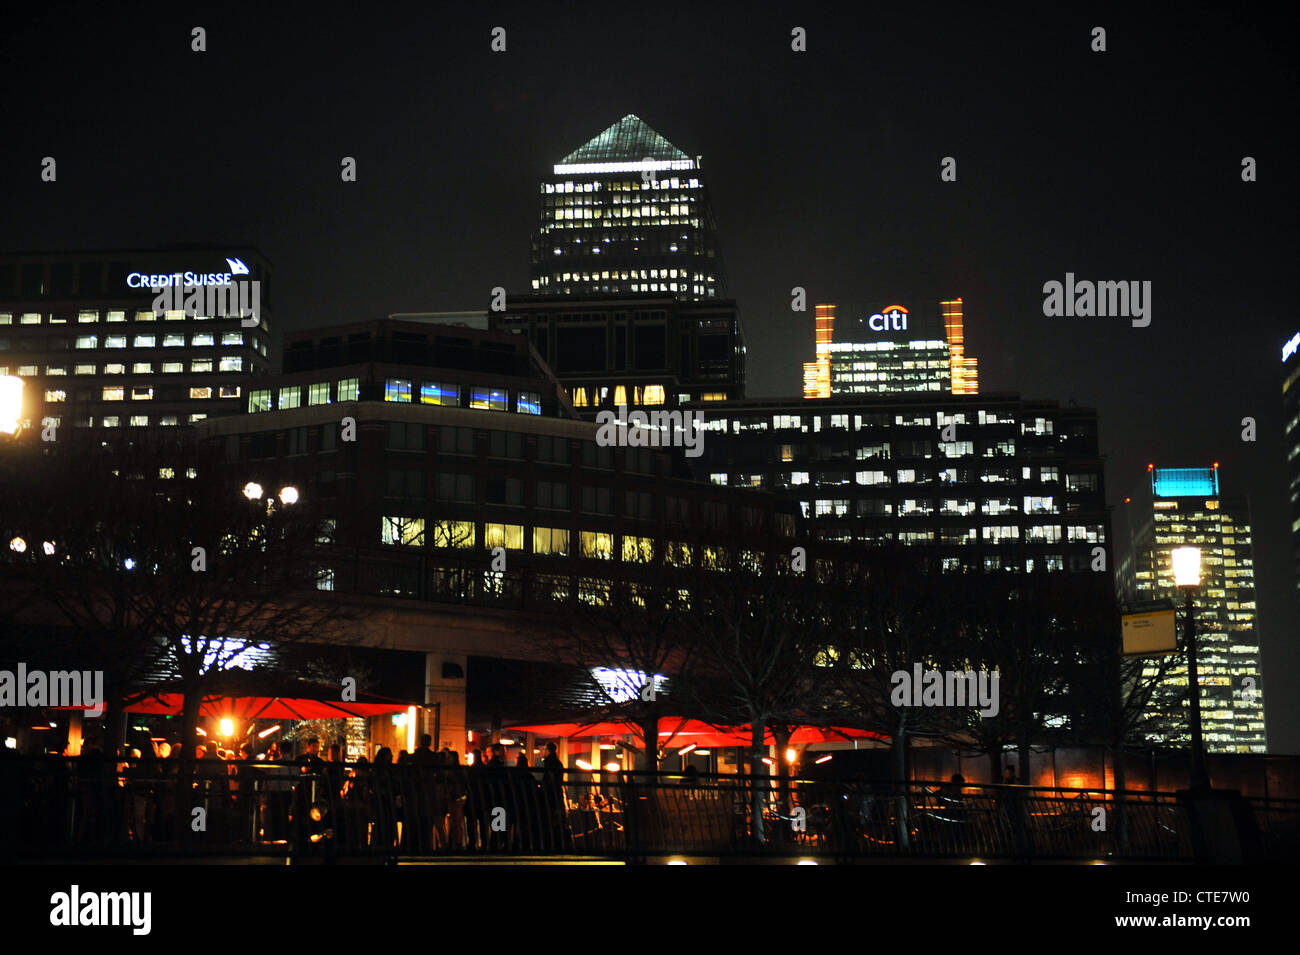 After Work drinkers fill the bars at Canary Wharf London at night - Stock Image